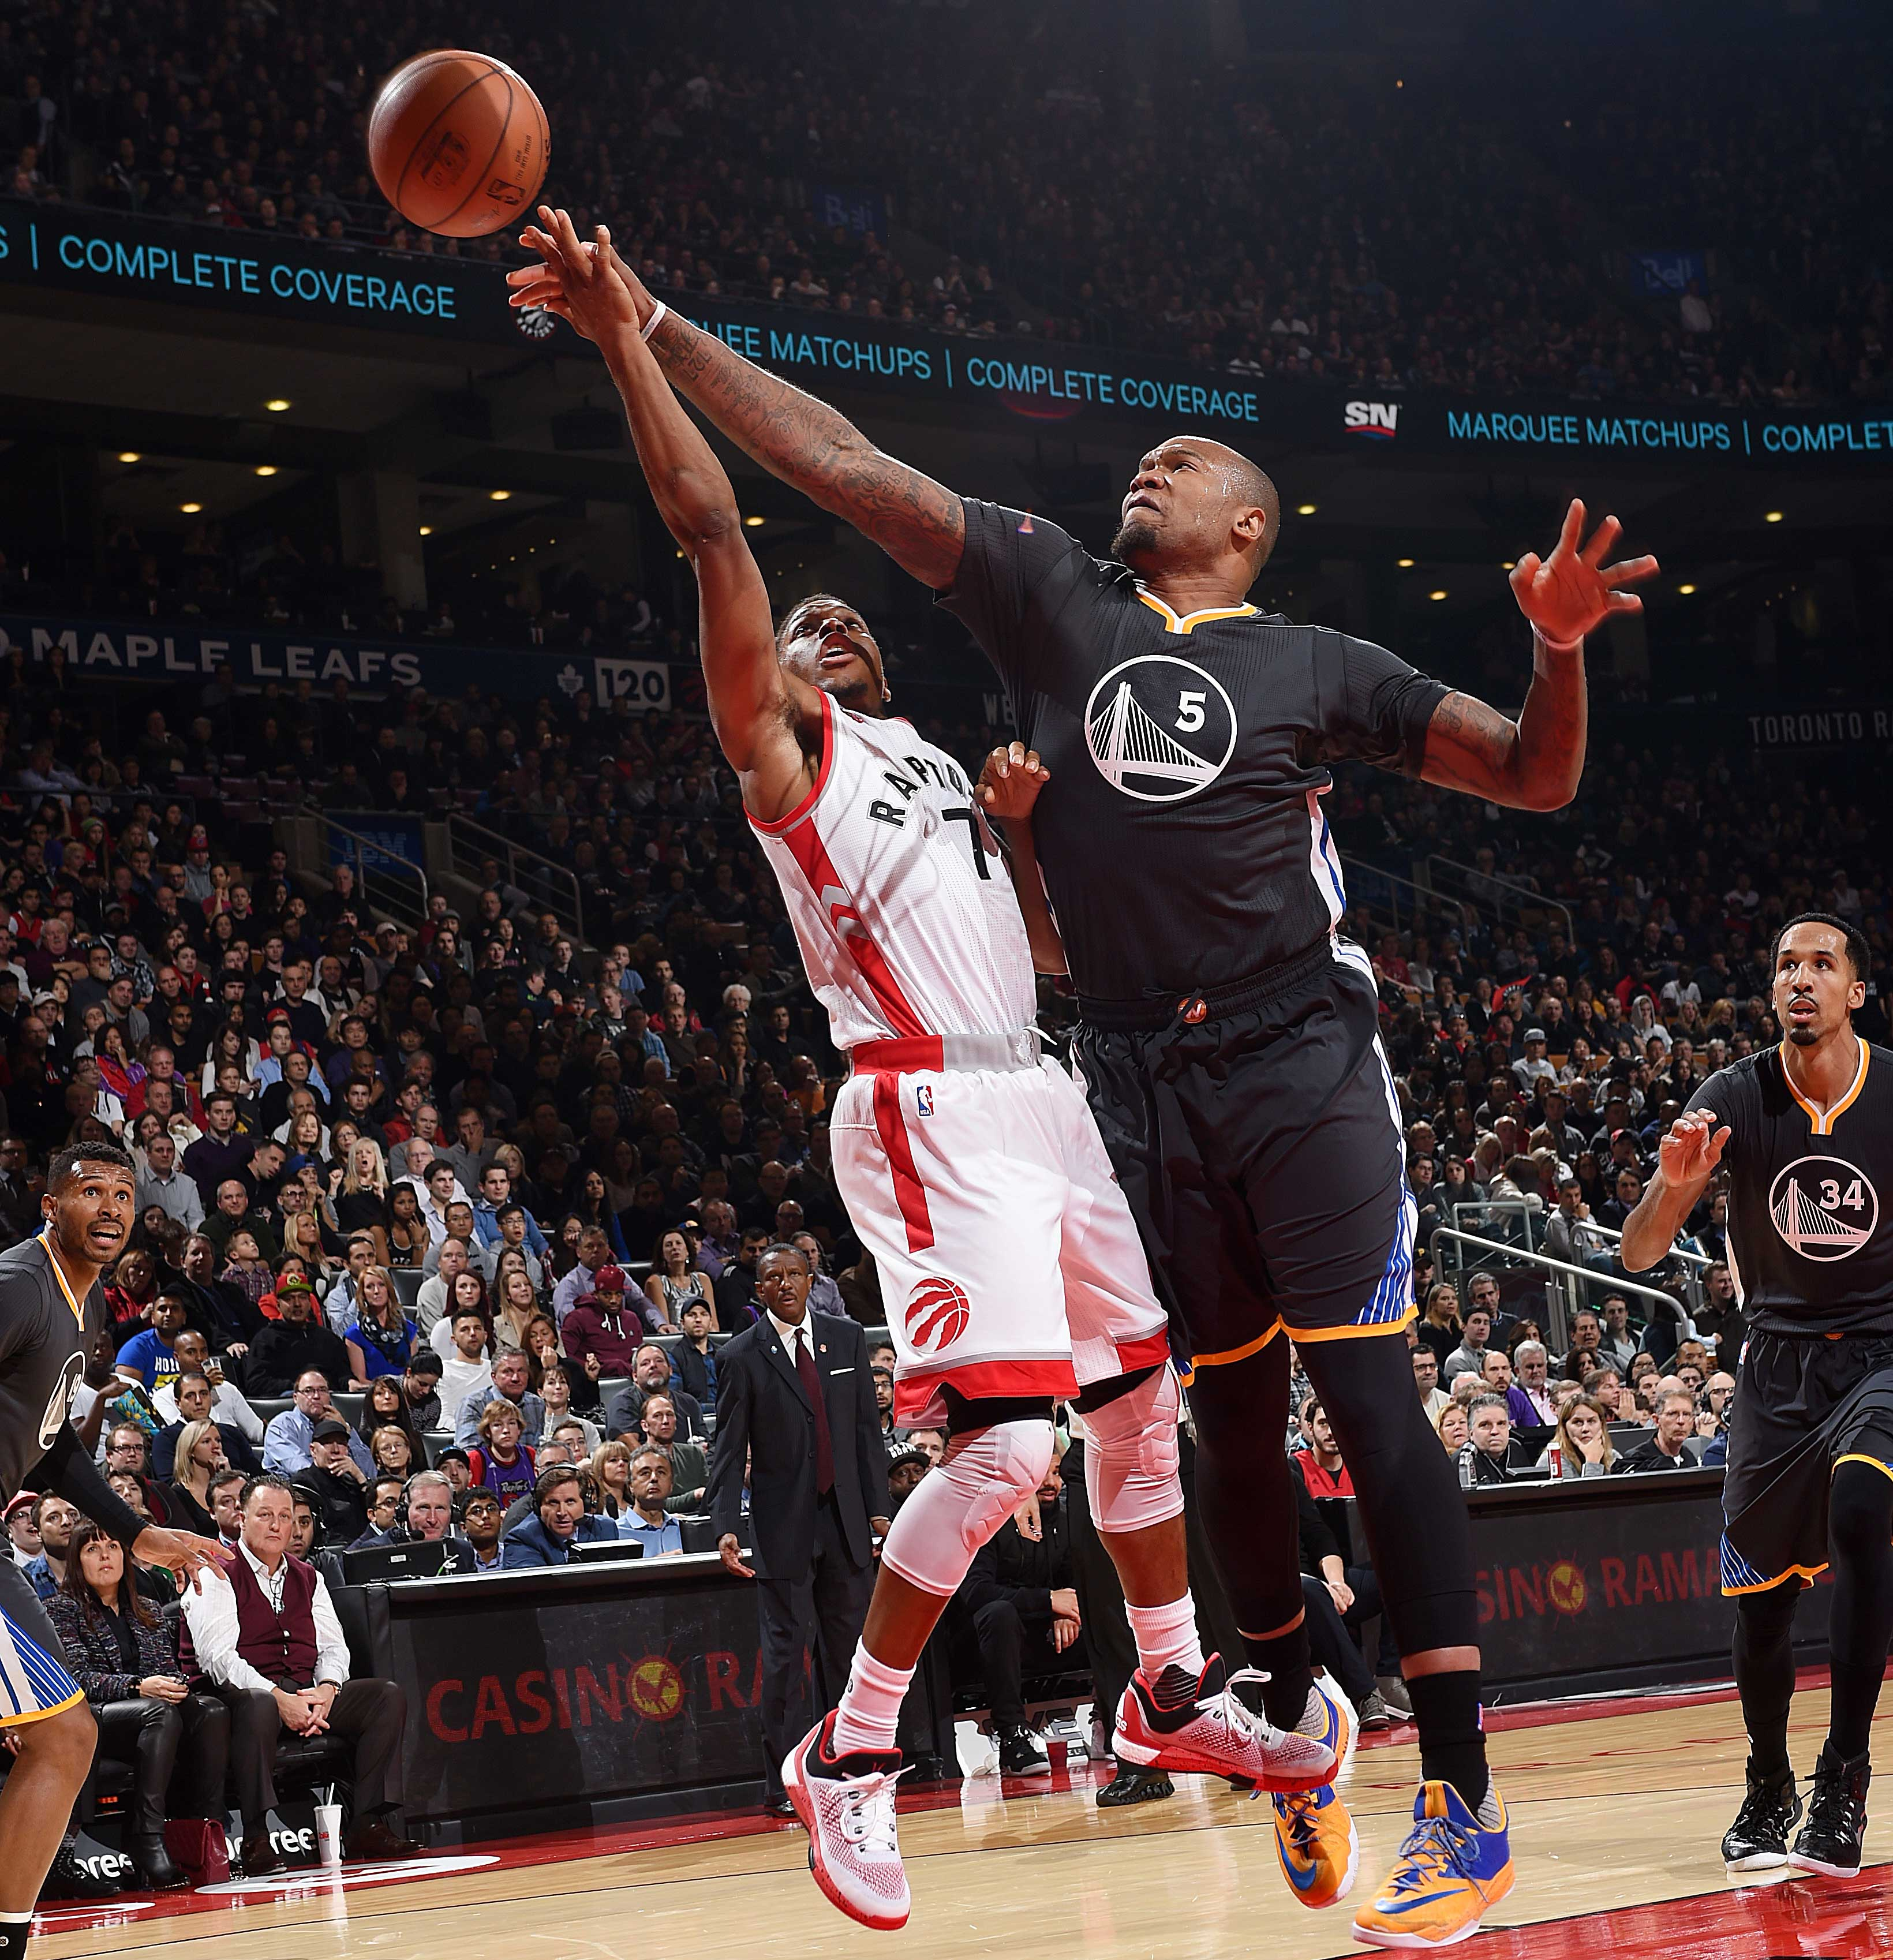 Marreese Speights of the Warriors blocks the shot of Kyle Lowry of the Toronto Raptors.